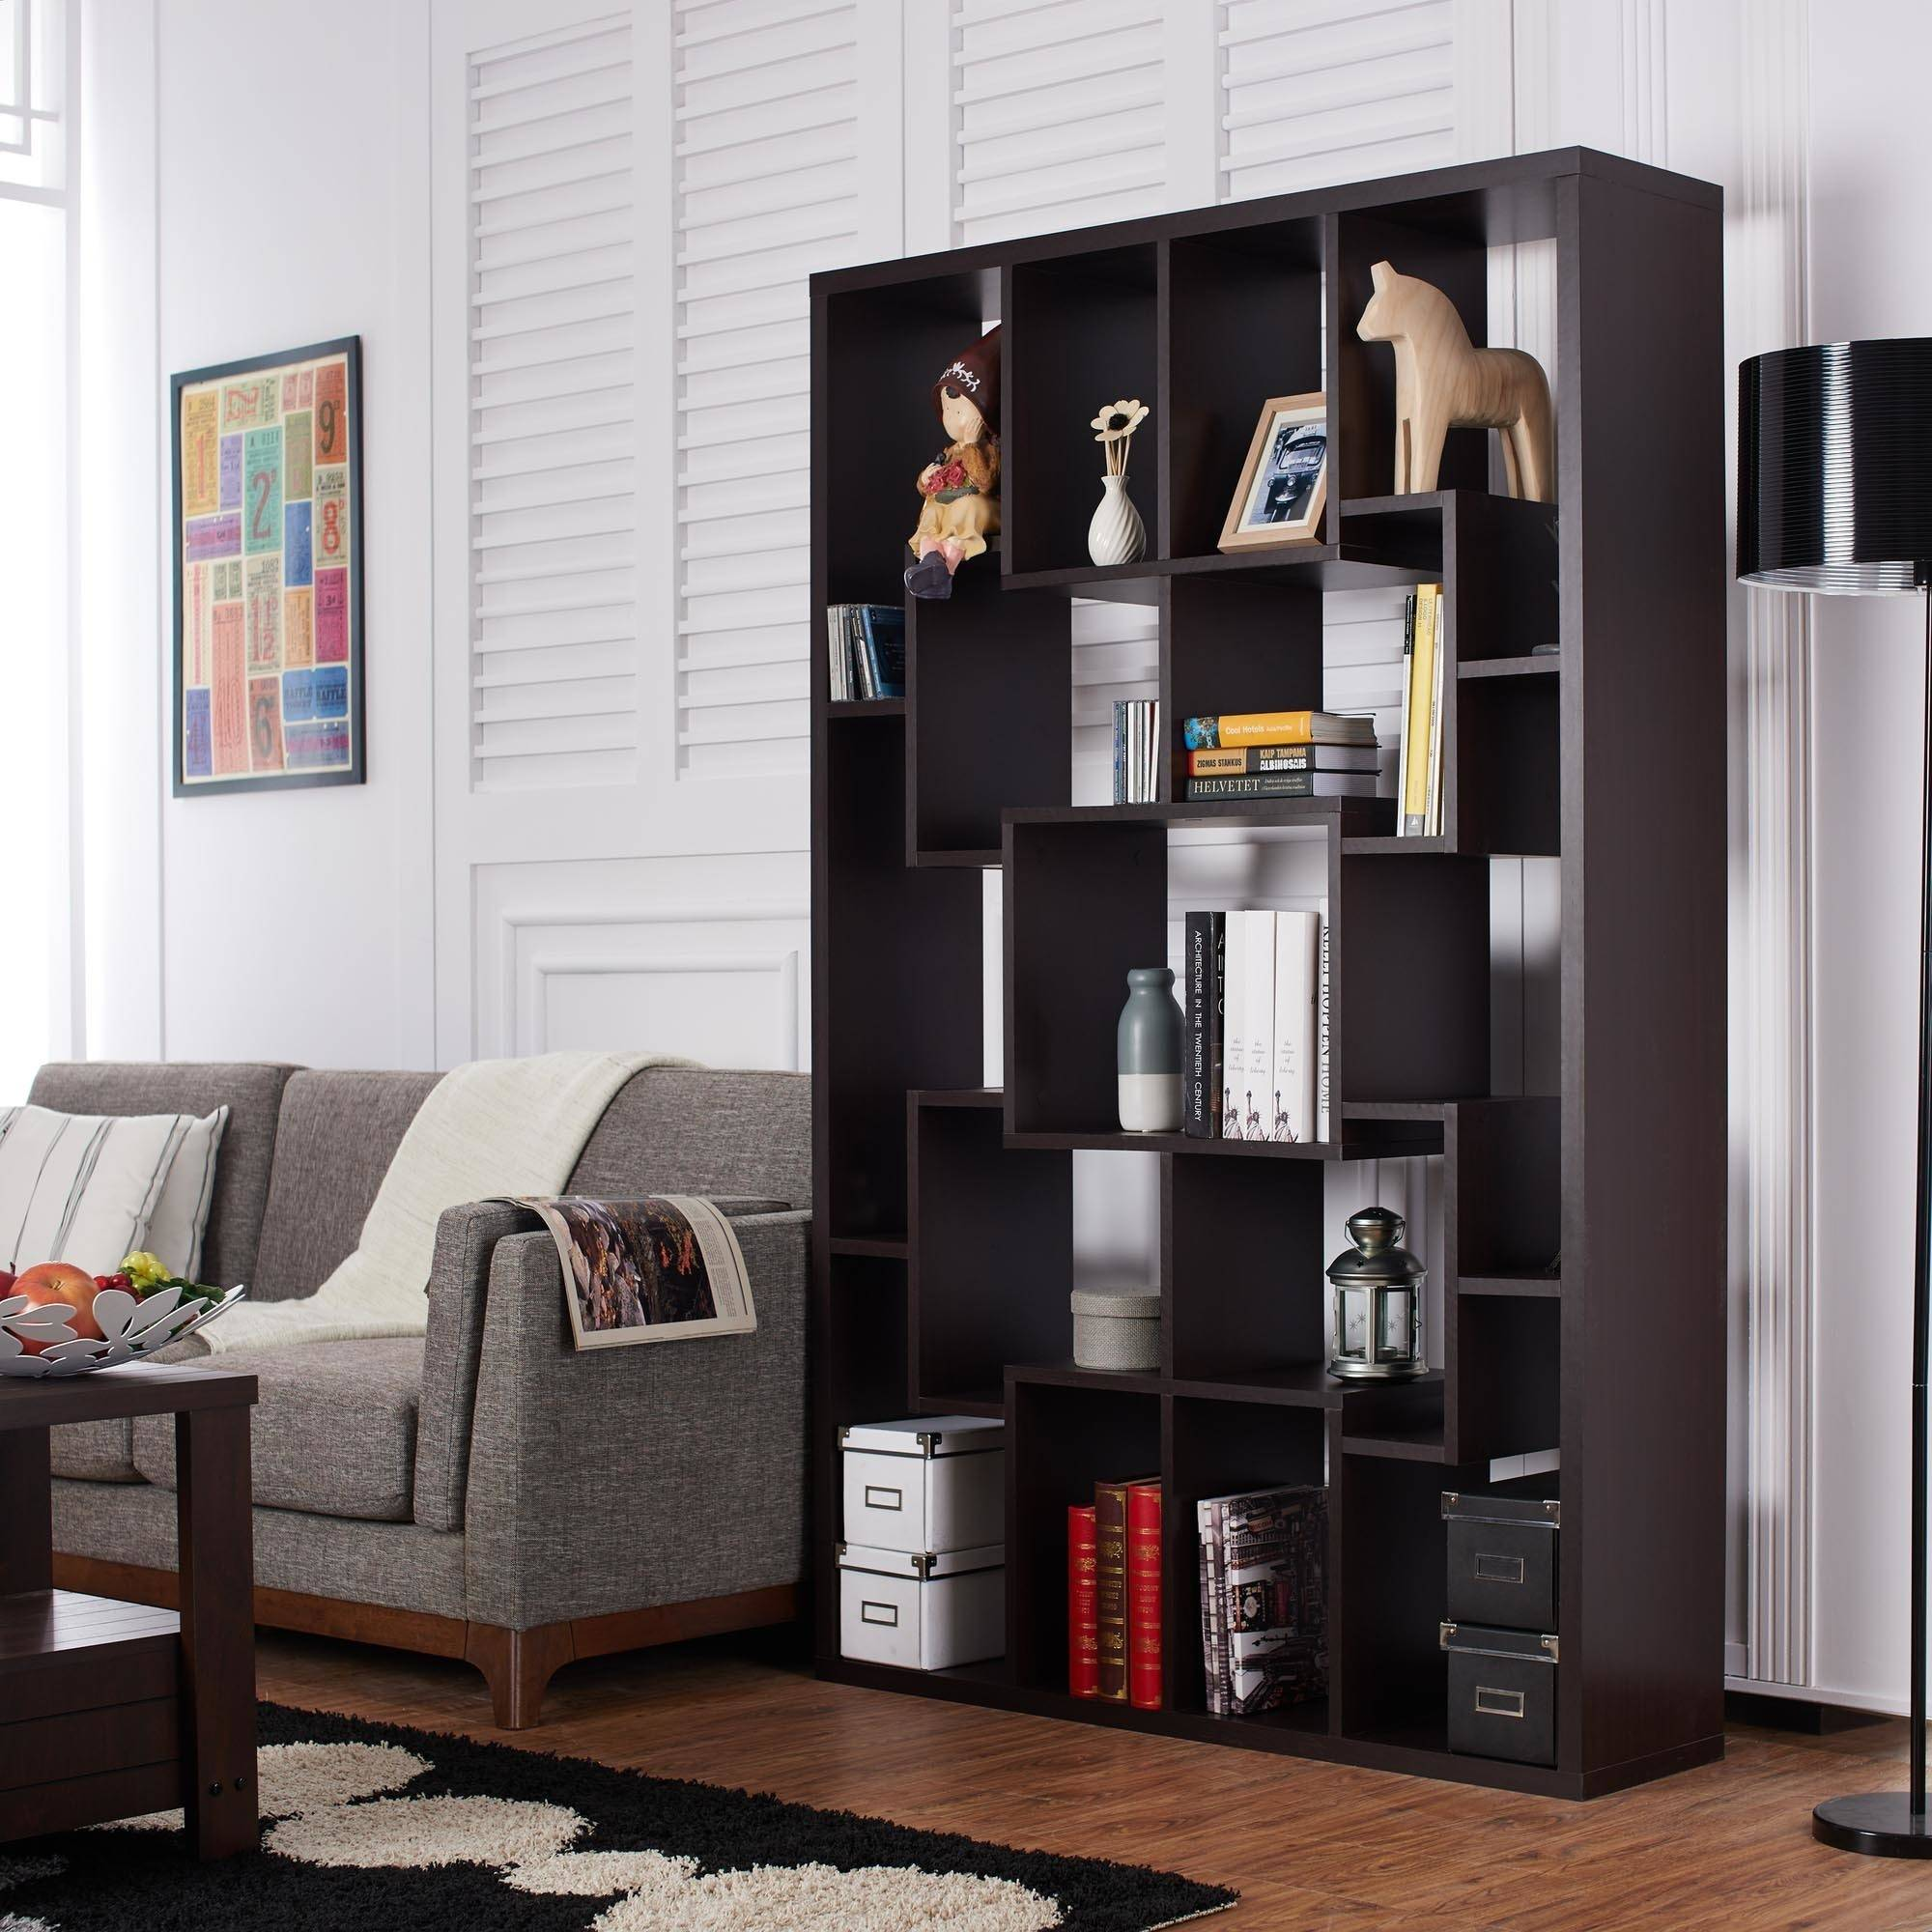 Furniture of America Bryson Multi-Shelf Display Case, Walnut